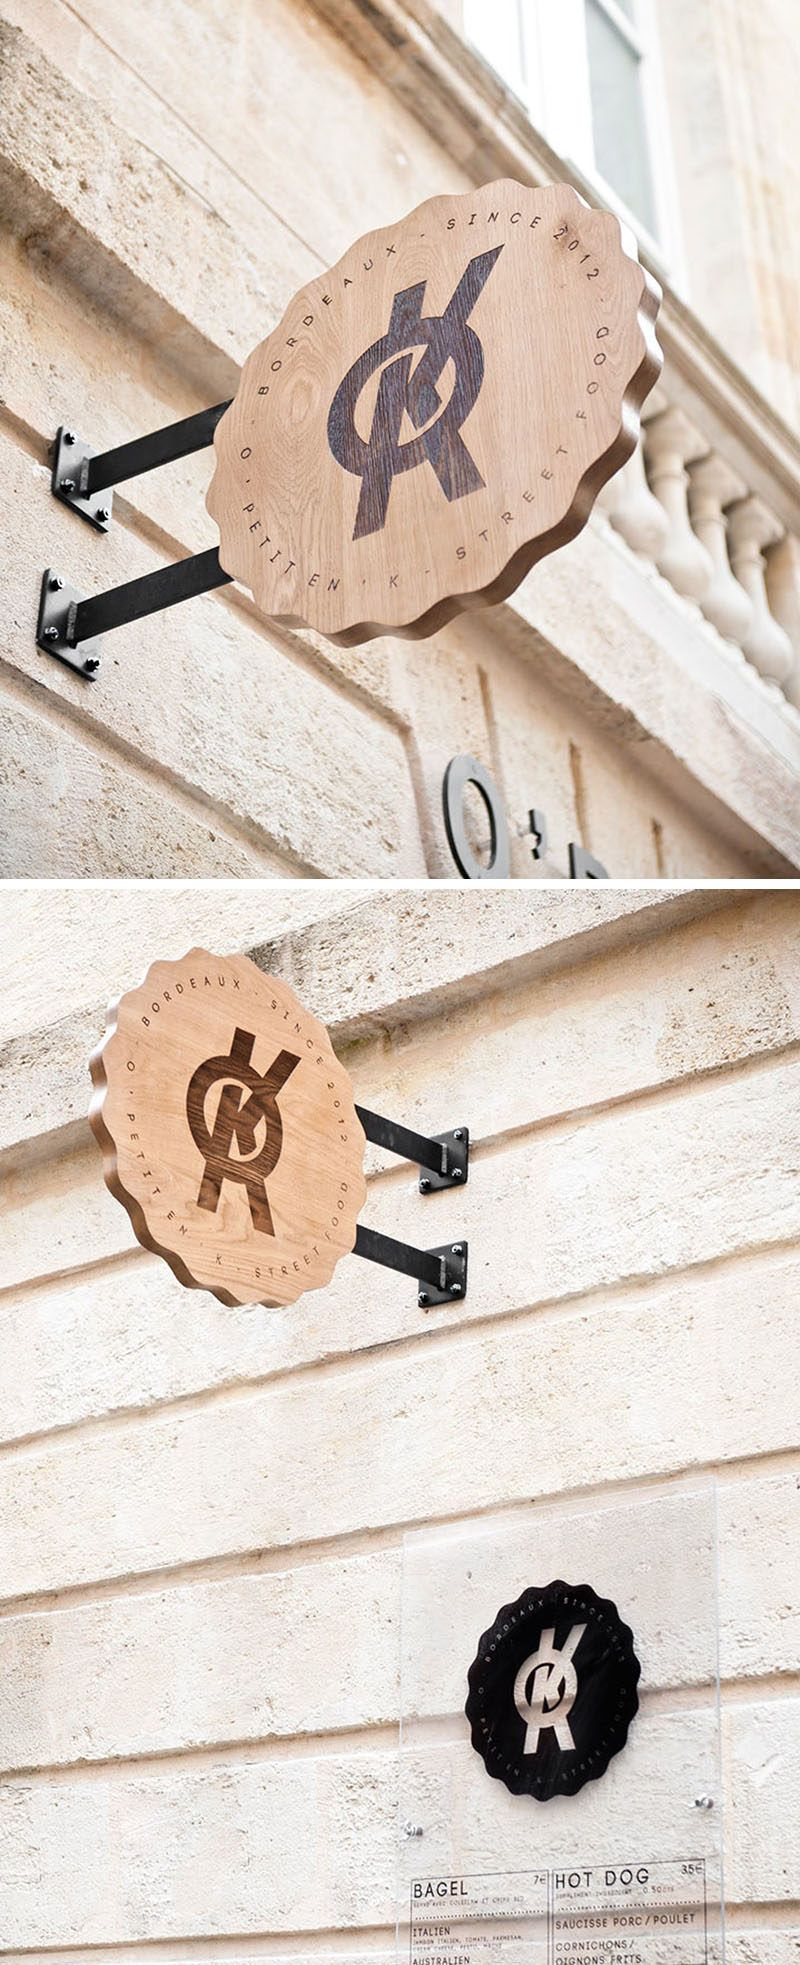 Meglio Neon O Led 9 design ideas for creative and modern wood signs   wood